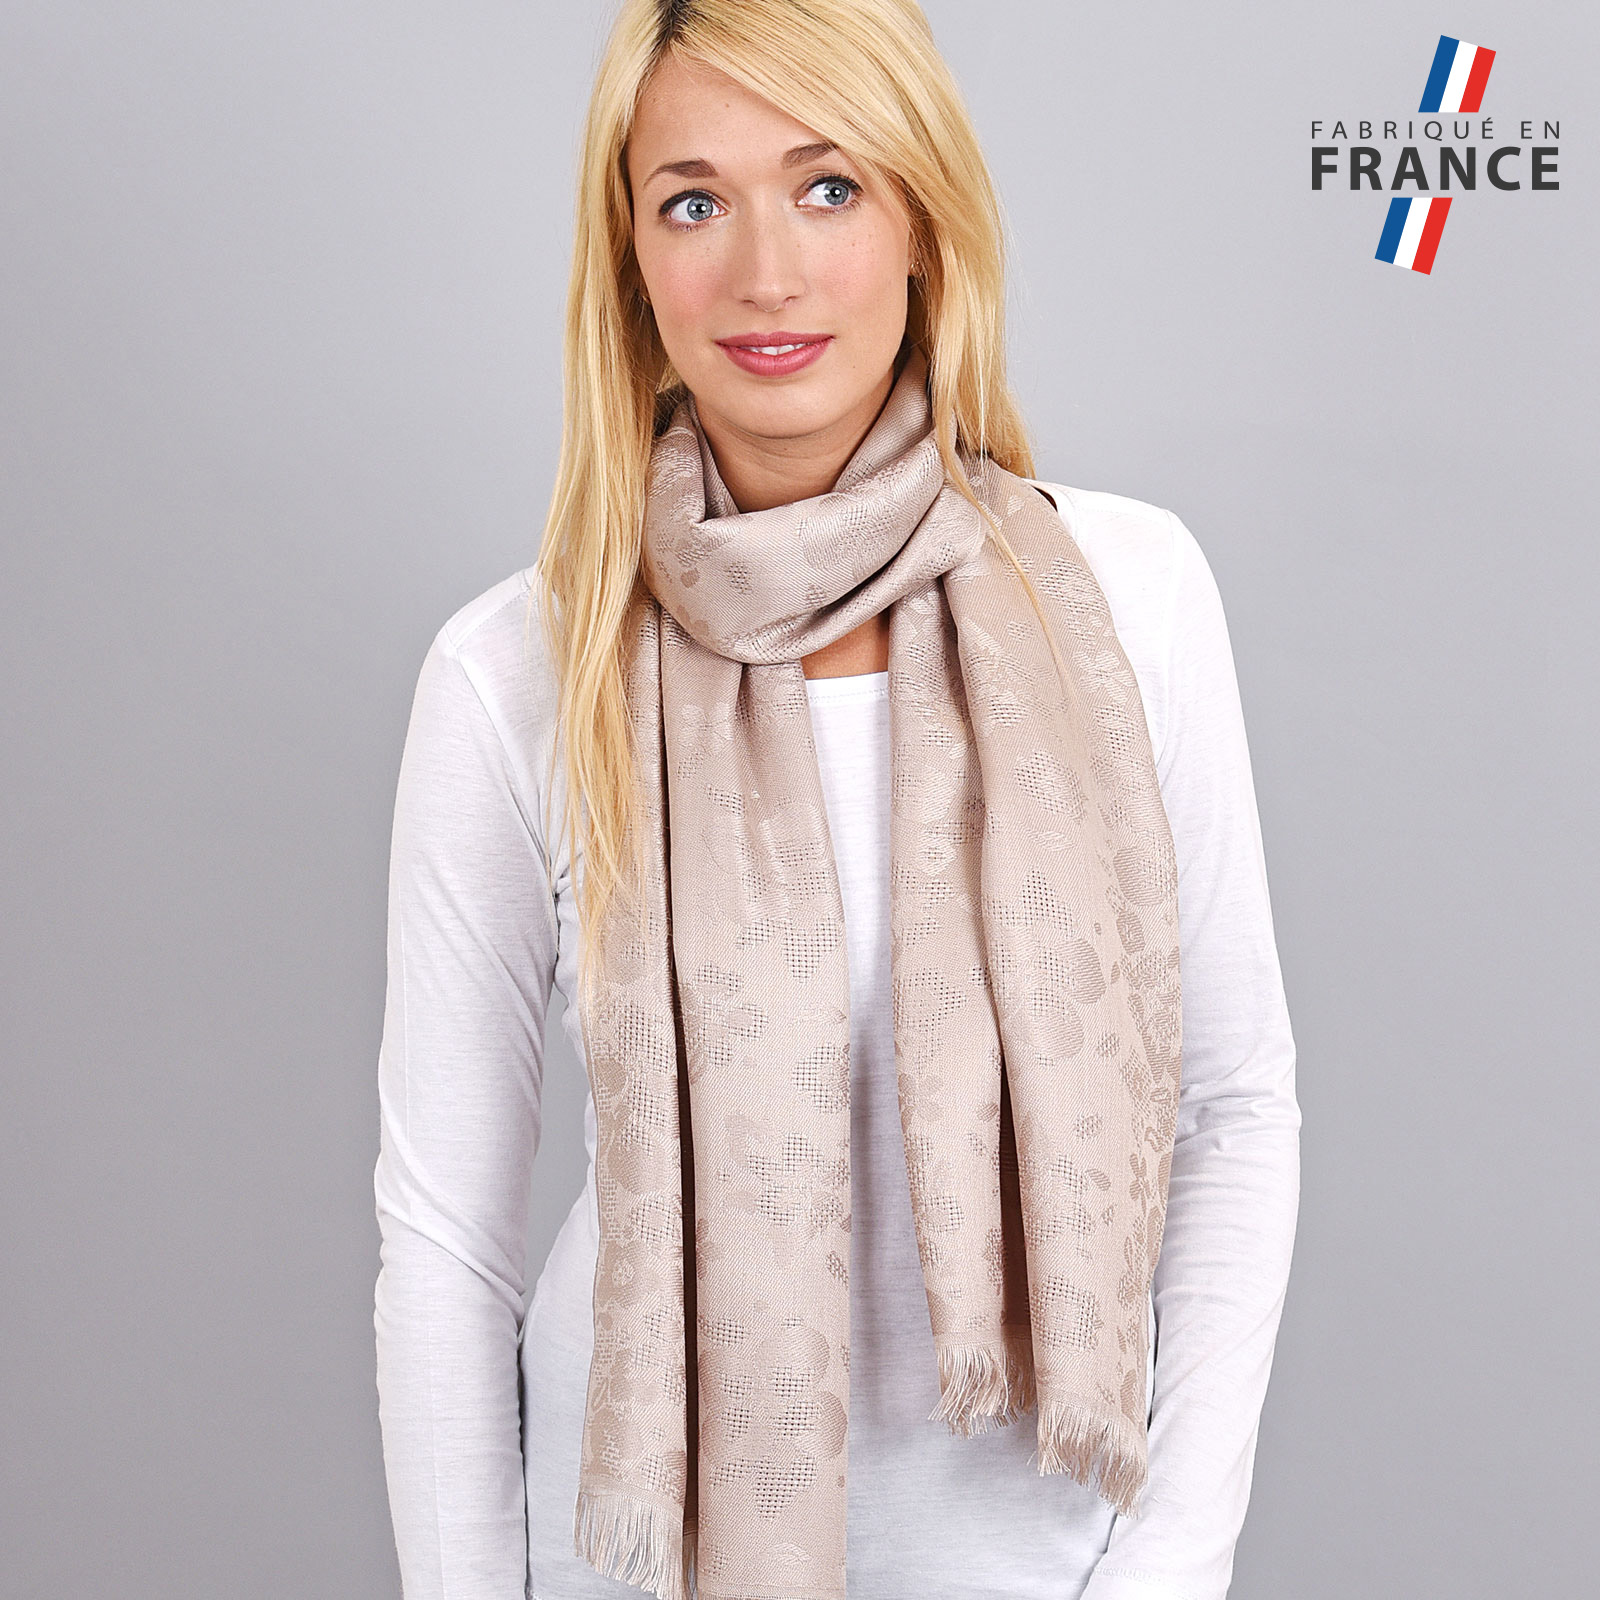 AT-04253-VF16-LB_FR-echarpe-femme-taupe-fabrication-france